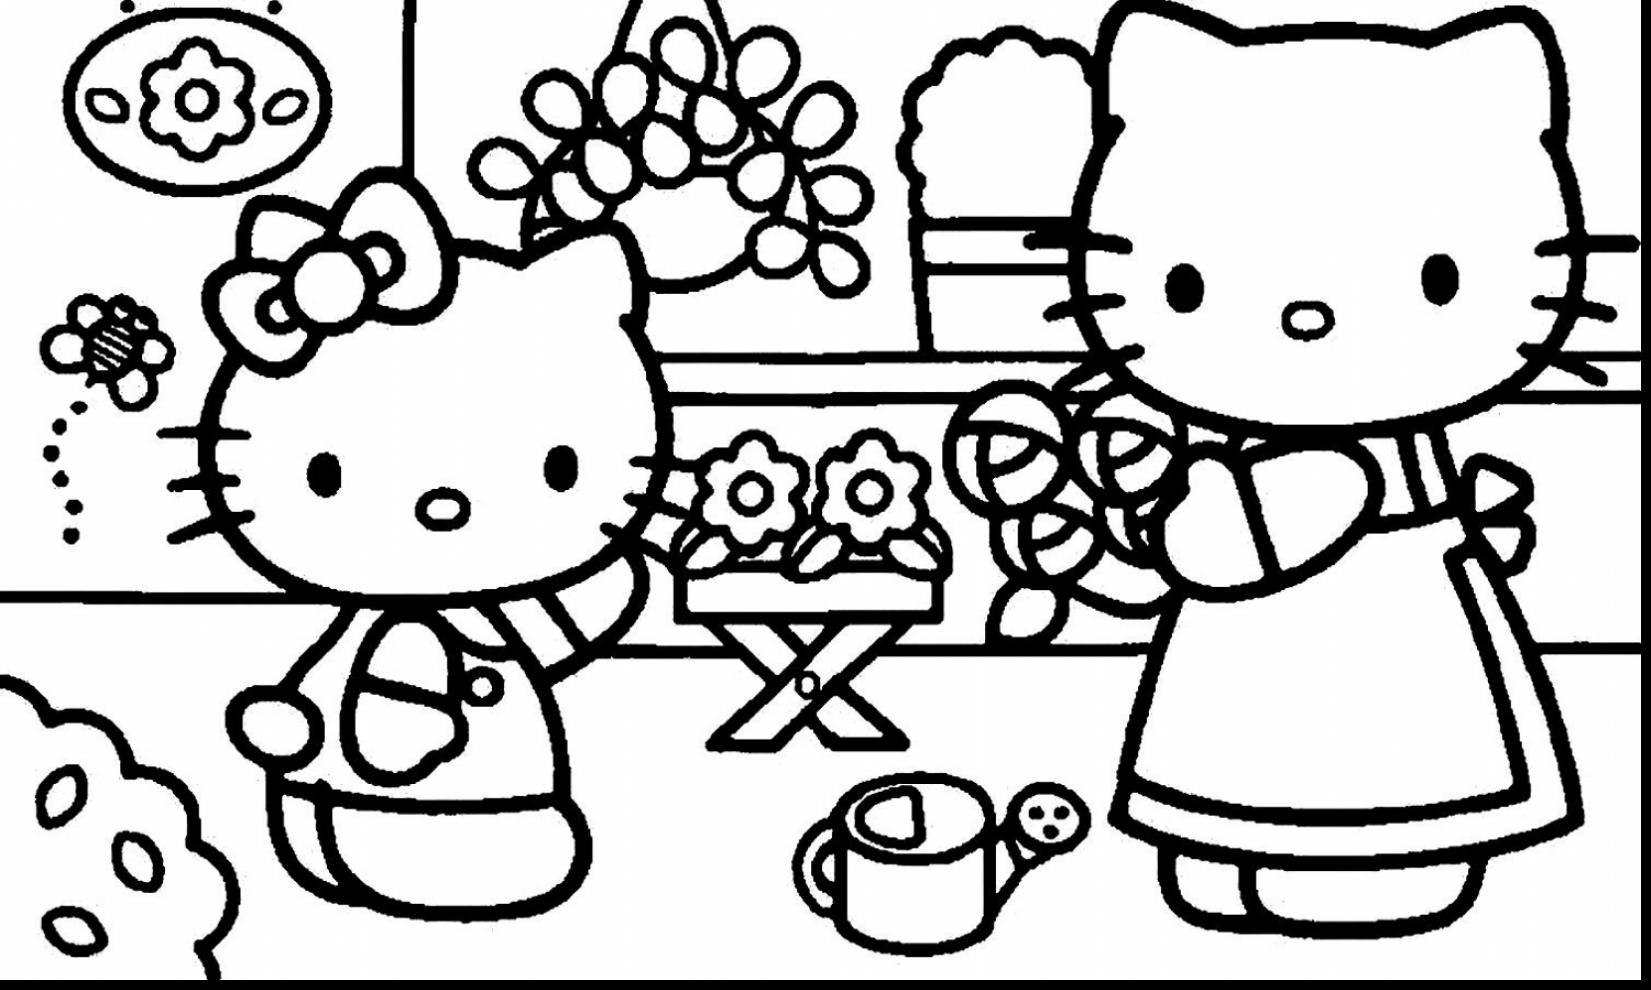 hello kitty dancing coloring pages top 75 free printable hello kitty coloring pages online kitty dancing pages hello coloring